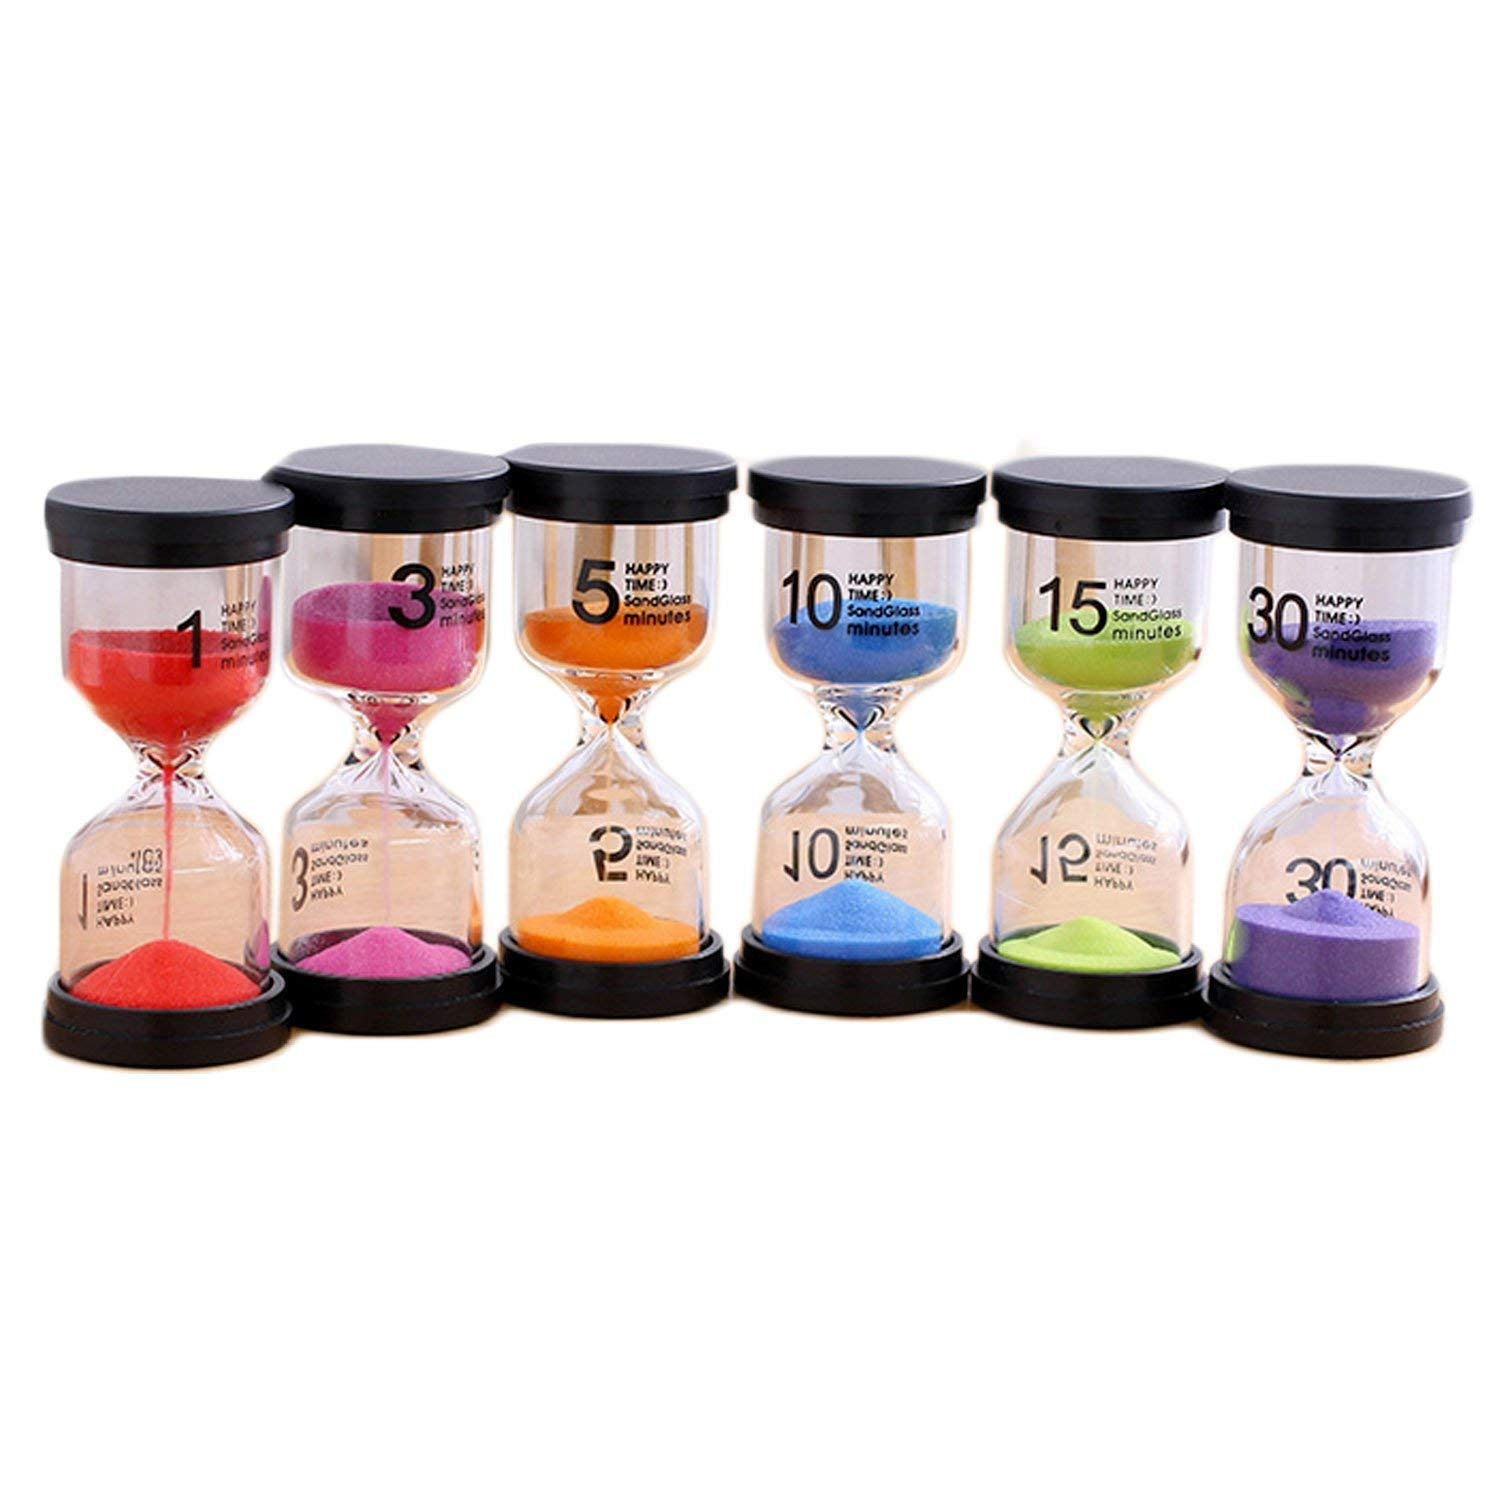 Gosear Hourglasses, Sand Timer 6pcs Hourglass Sand Clock Timer Sandglass 1 3 5 10 15 30mins for Classroom Game Home Office Decoration Random Colors. by Gosear (Image #1)